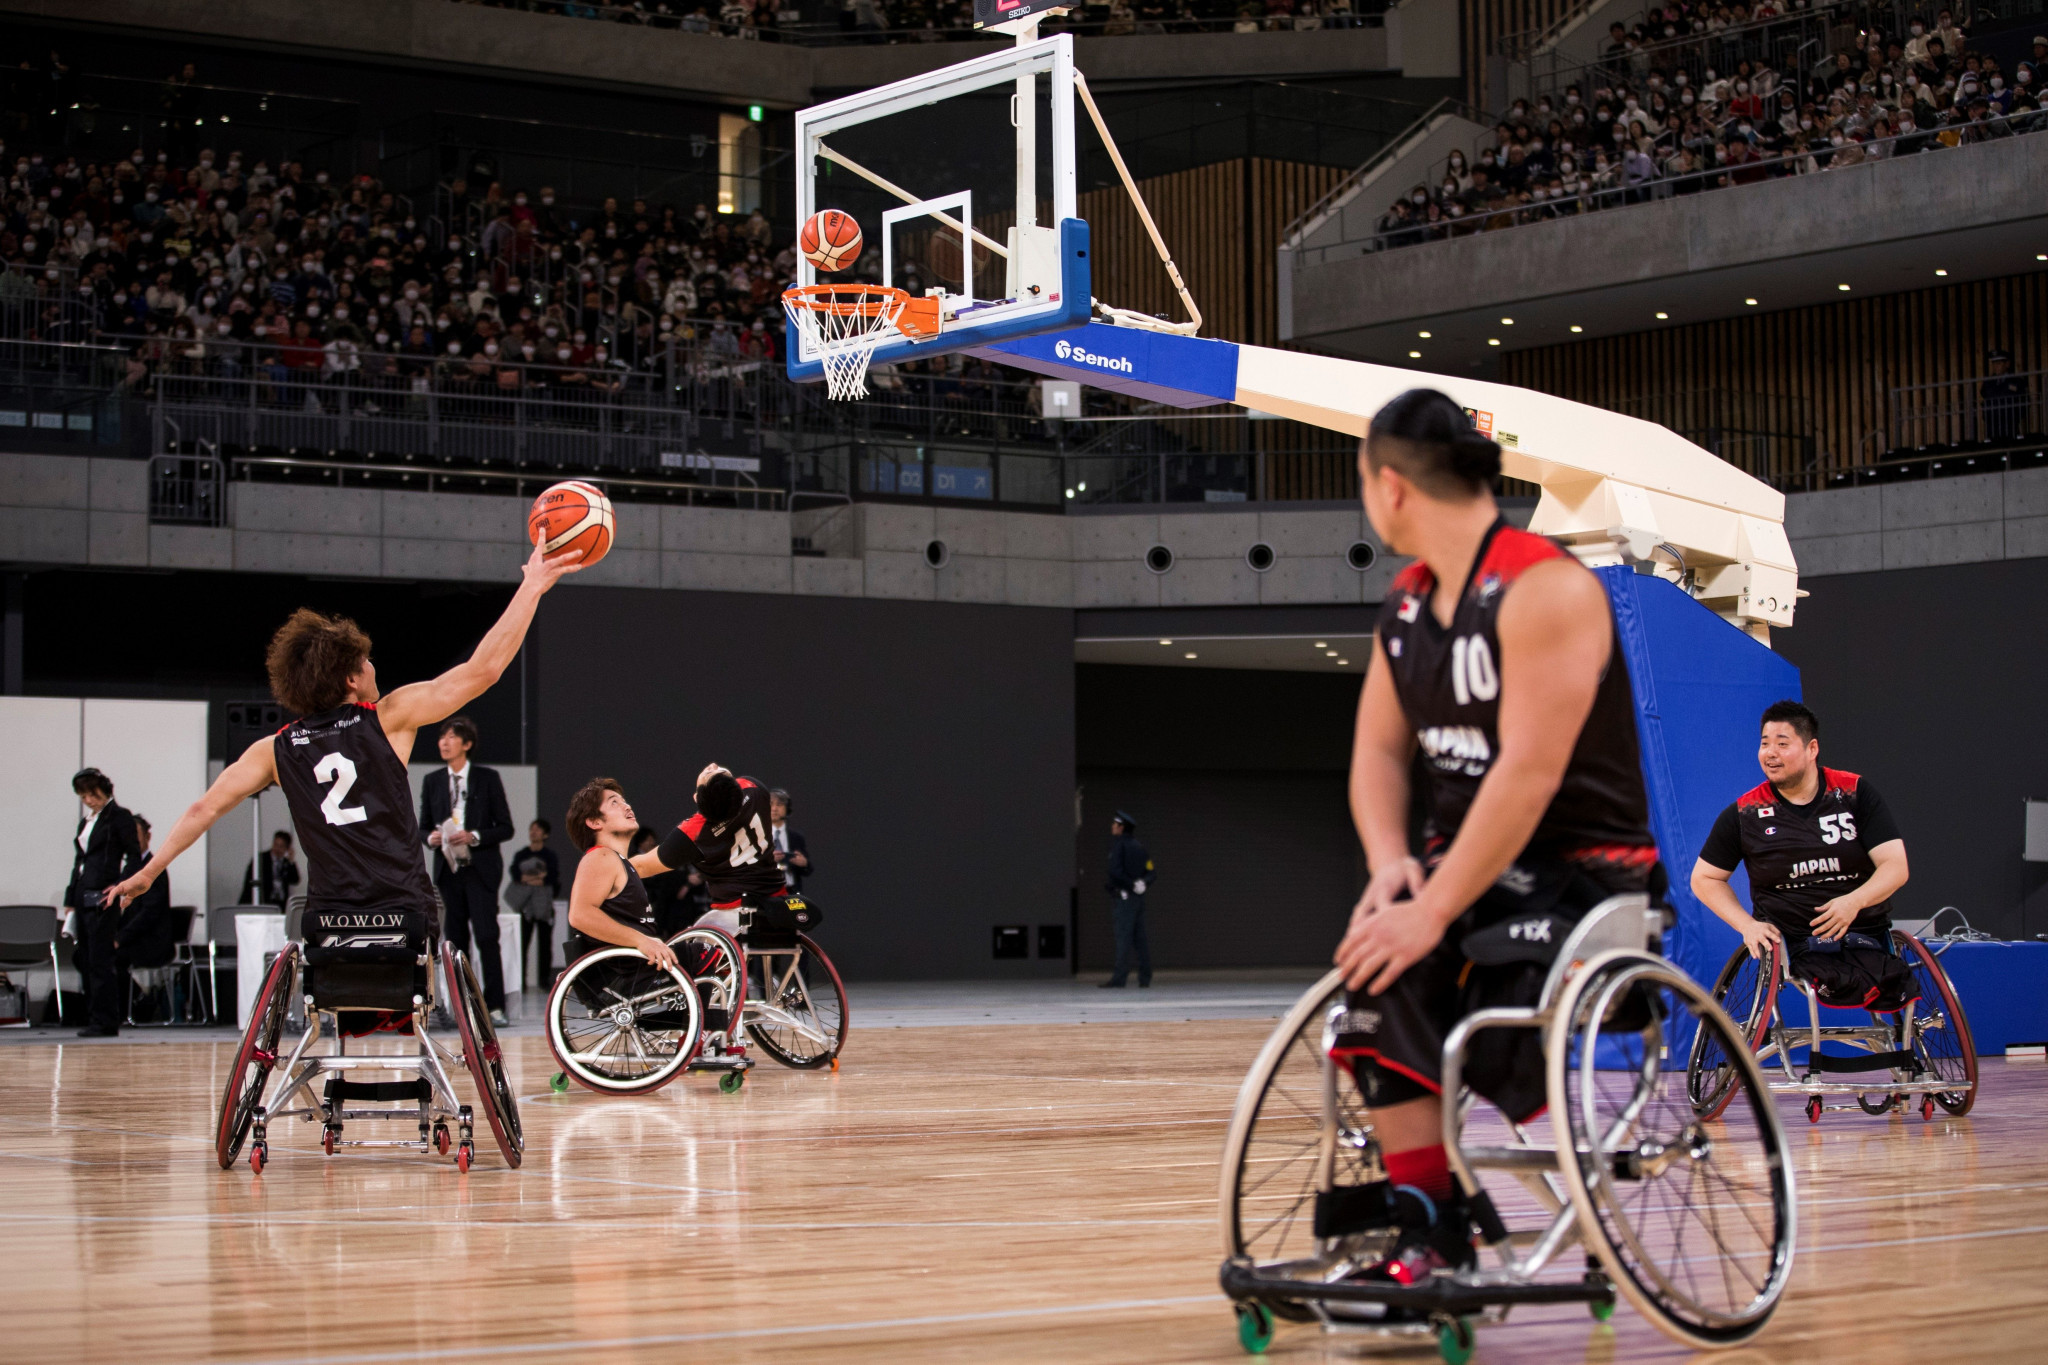 Samsung will provide valuable support to the successful delivery of the Tokyo 2020